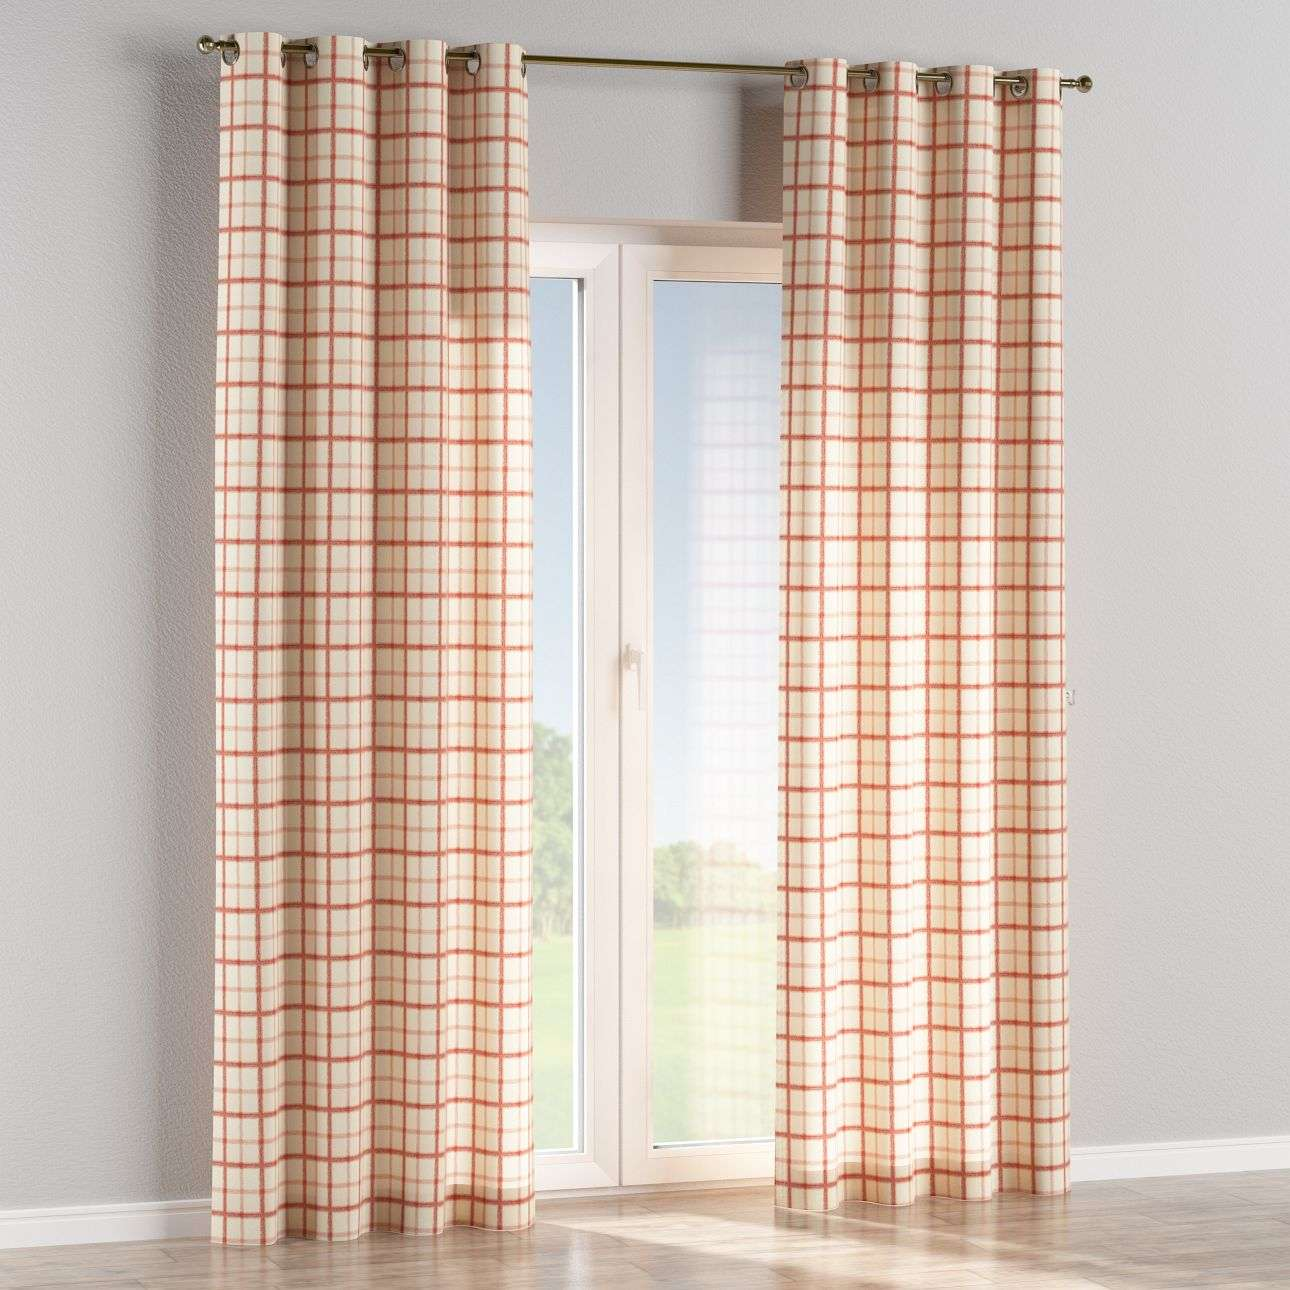 Eyelet curtains 130 × 260 cm (51 × 102 inch) in collection Avinon, fabric: 131-15